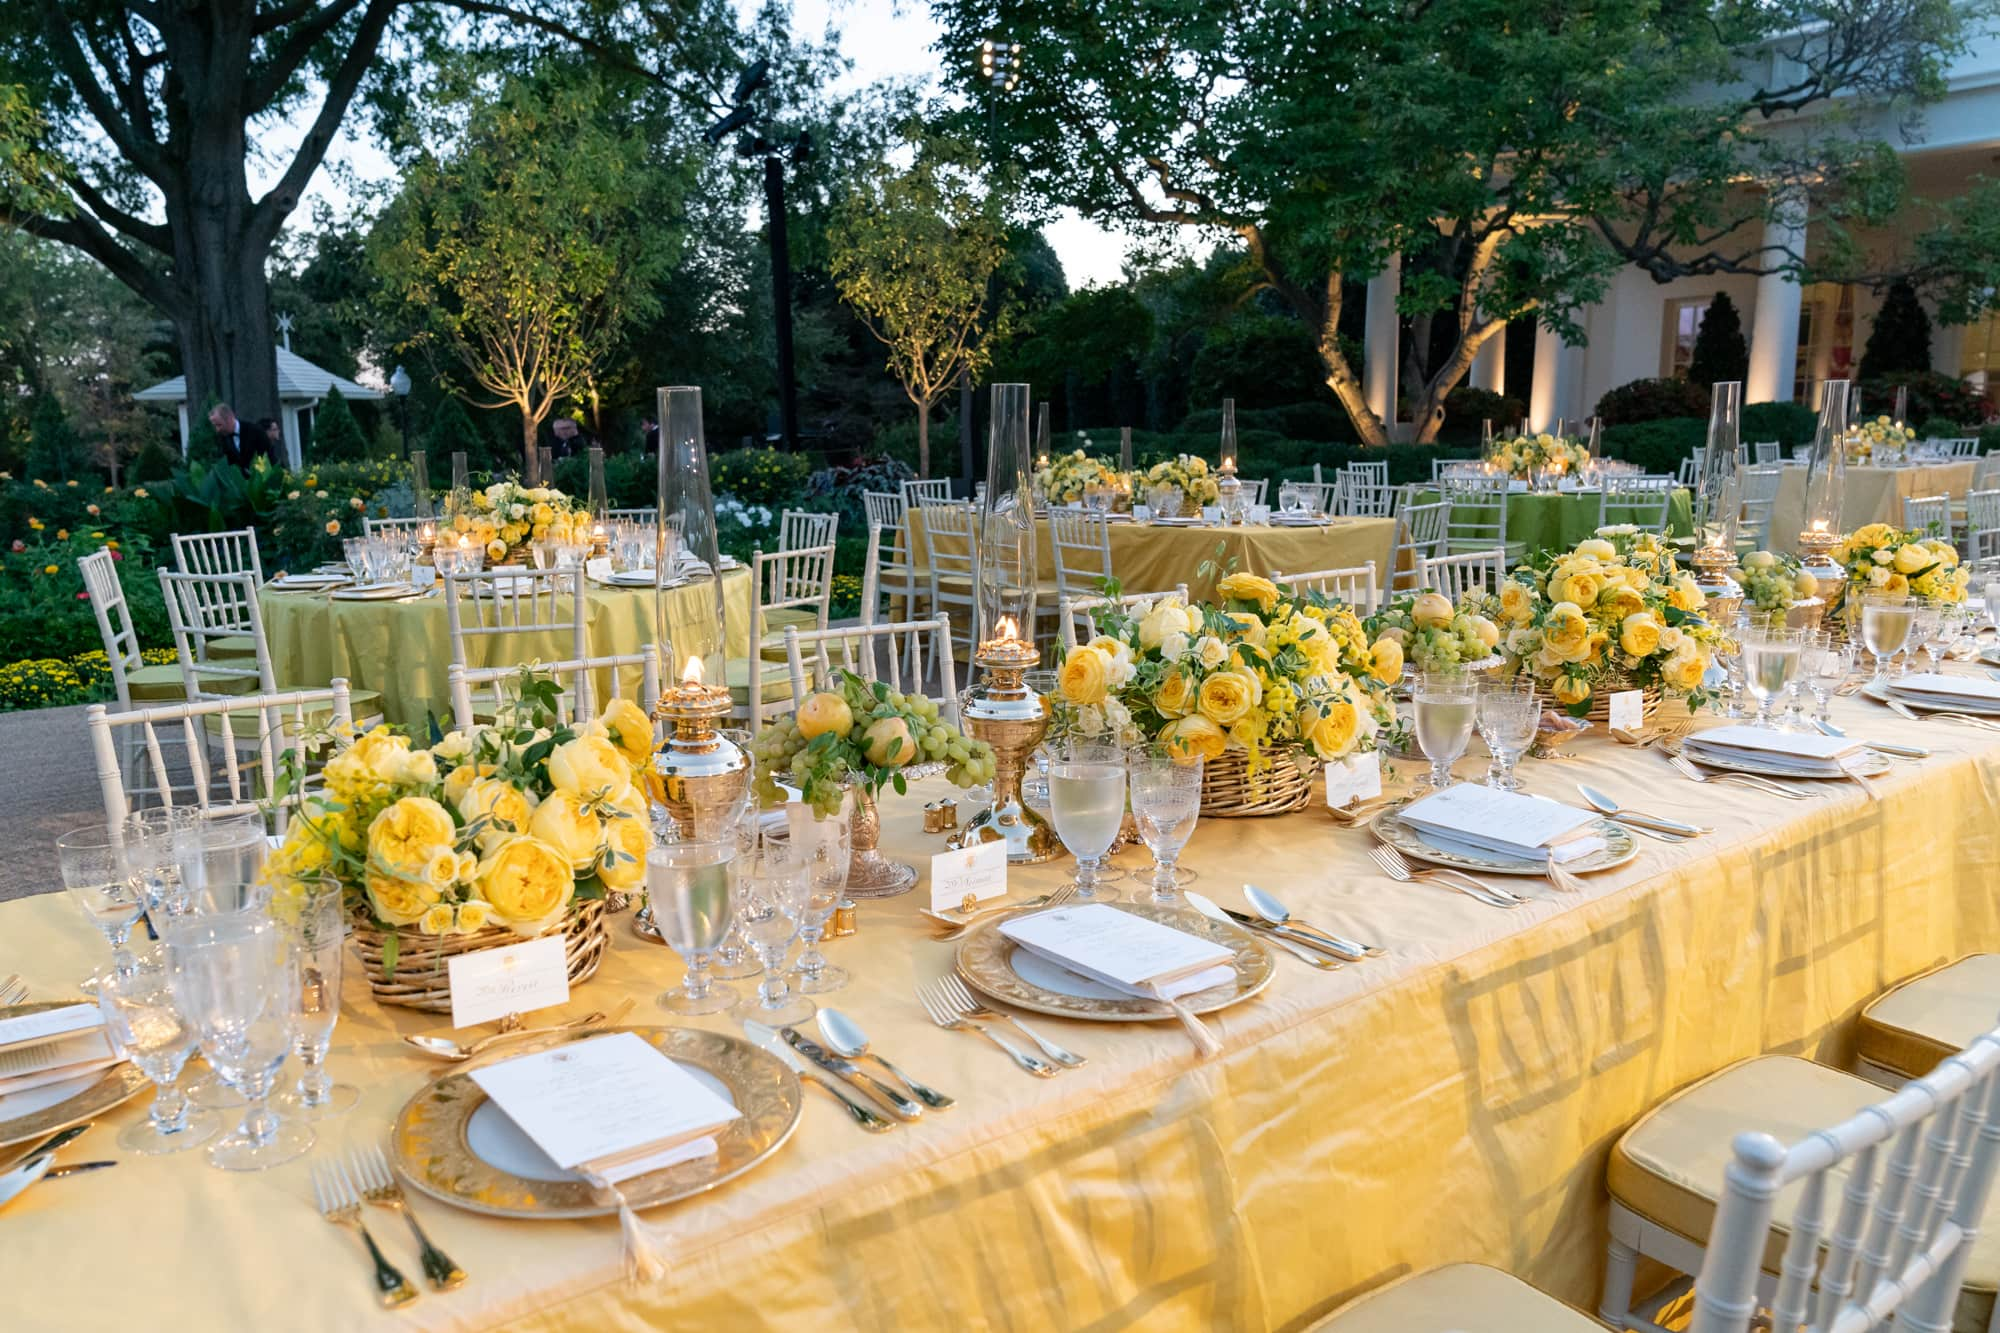 Tables set with flower arrangements and table setting for dinner in courtyard.